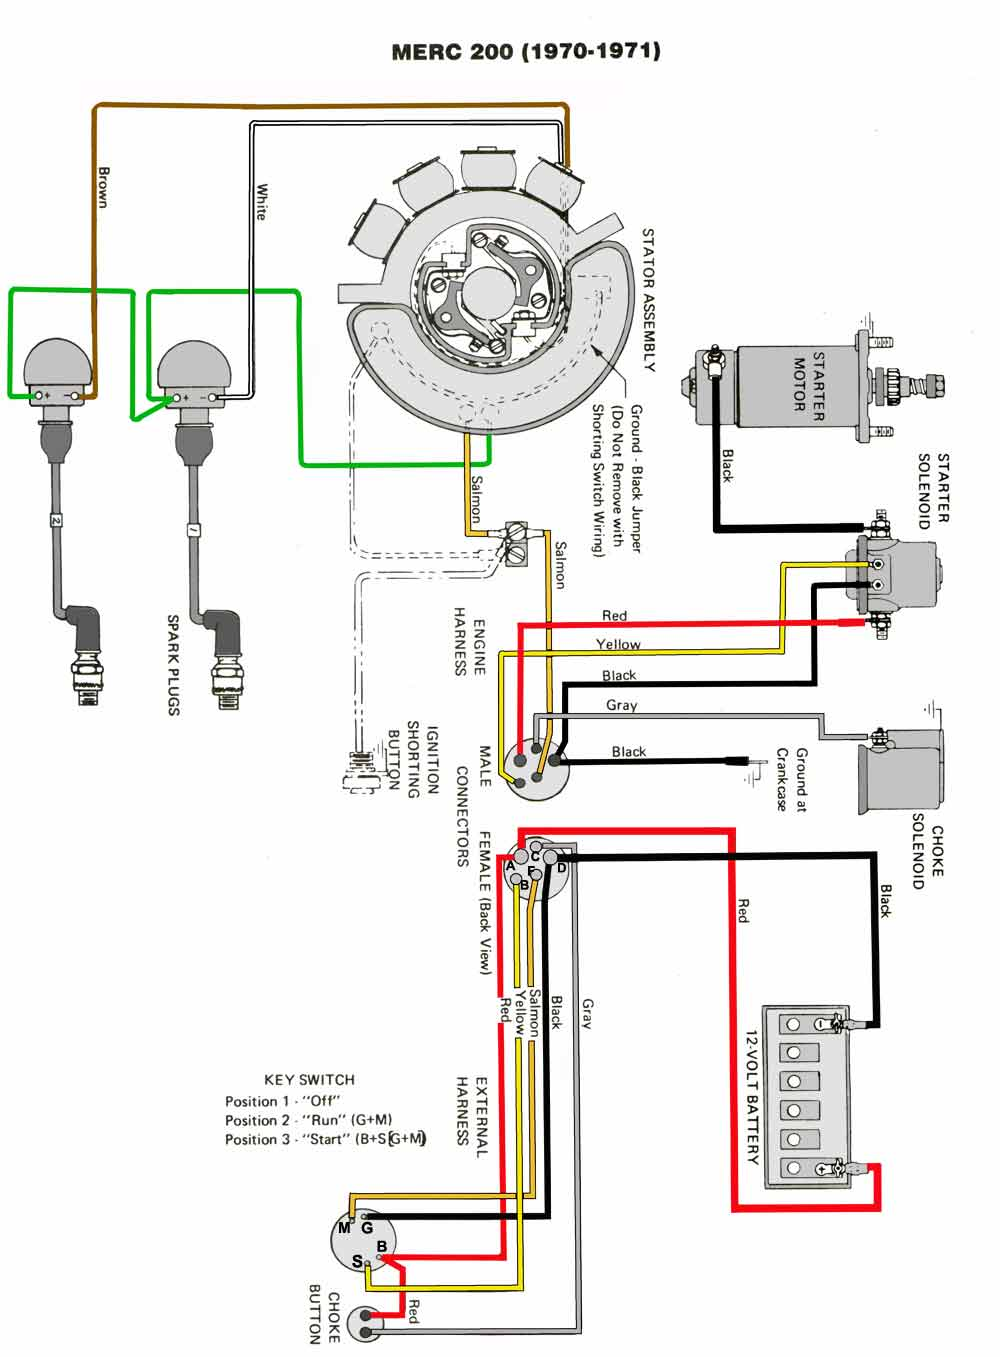 Wiring diagrams further Wiring Diagram For Catalina 22 Sailboat additionally S 1025196 in addition 1947 Plymouth Fuel Gauge Wiring Diagram furthermore Showthread. on boat wiring diagram fuel gauge here